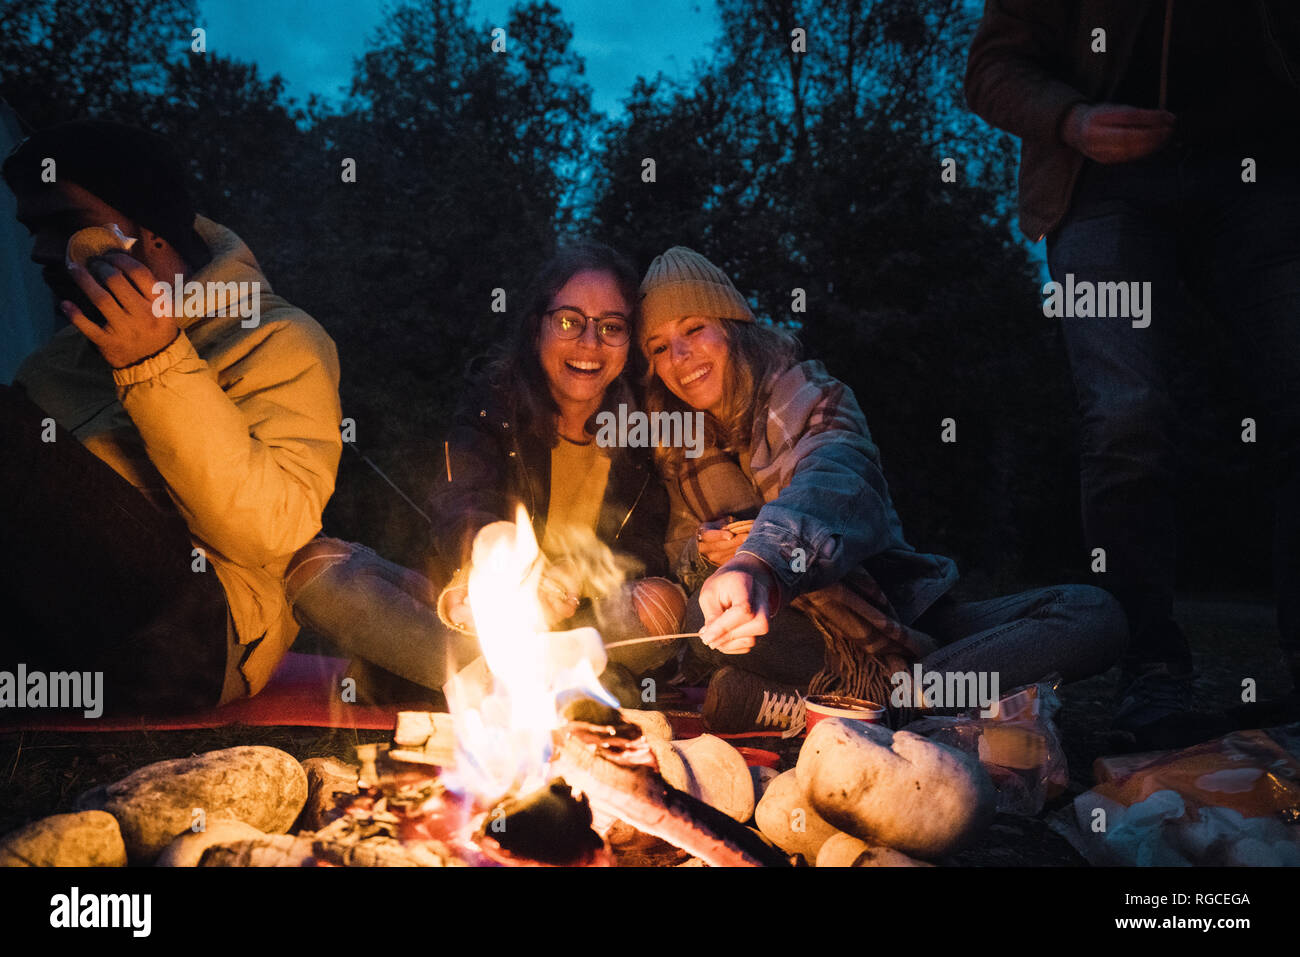 Group of friends sitting at a campfire, roasting marshmallows - Stock Image